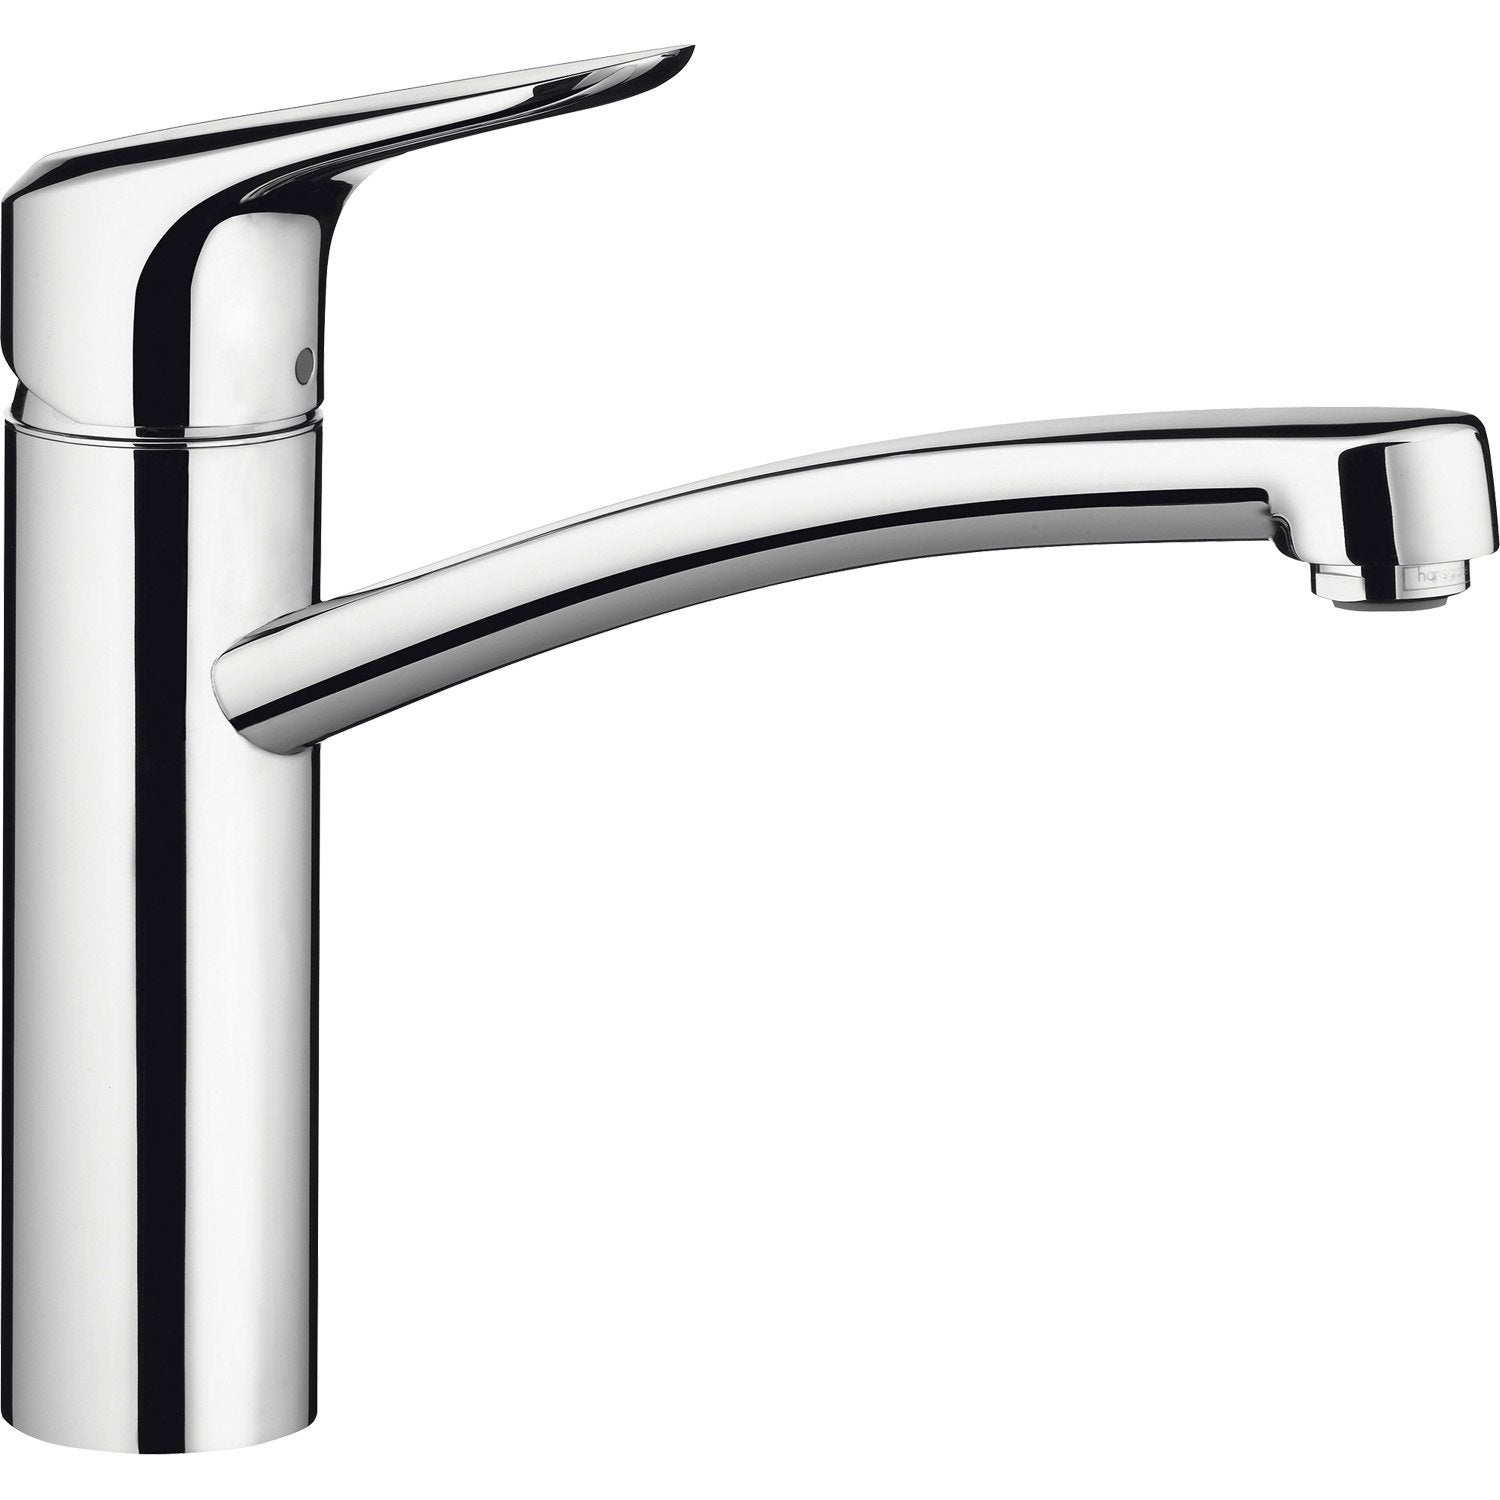 Robinetterie cuisine grohe prix - Robinet cuisine grohe prix ...